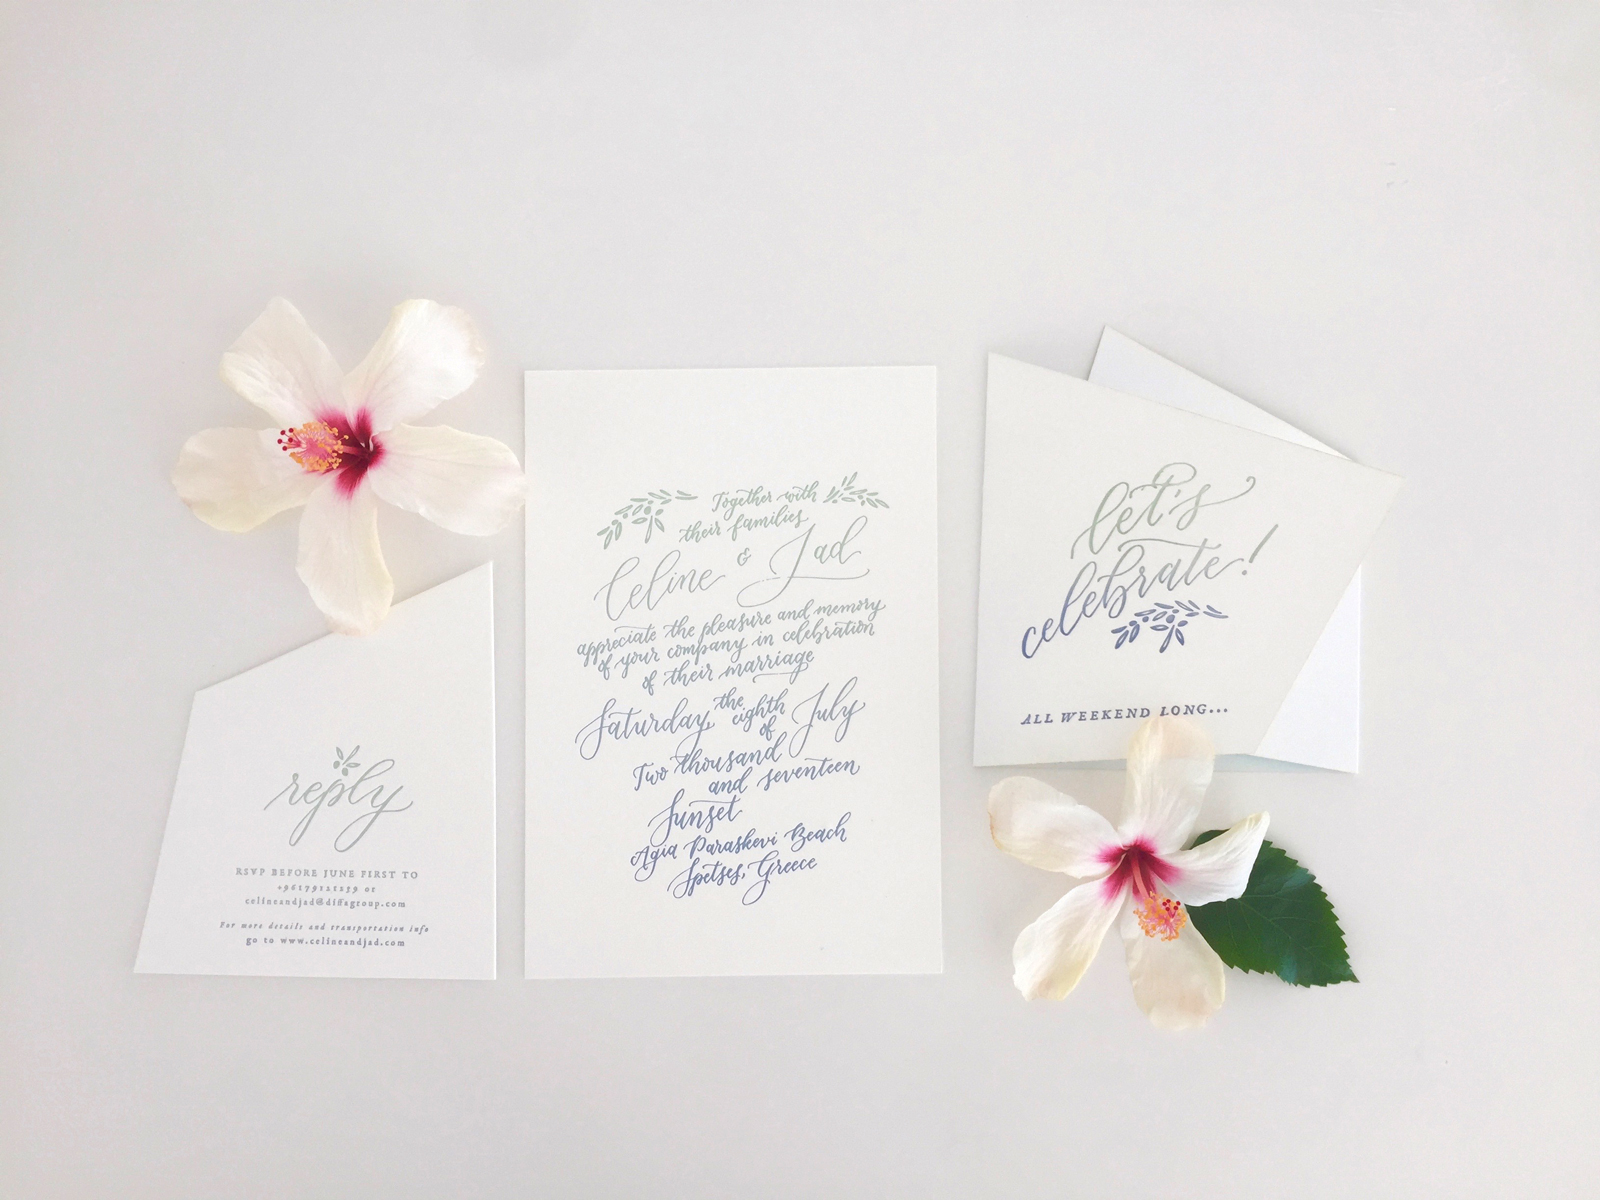 Calligraphed Invitations vs. Letterpressed Invitations